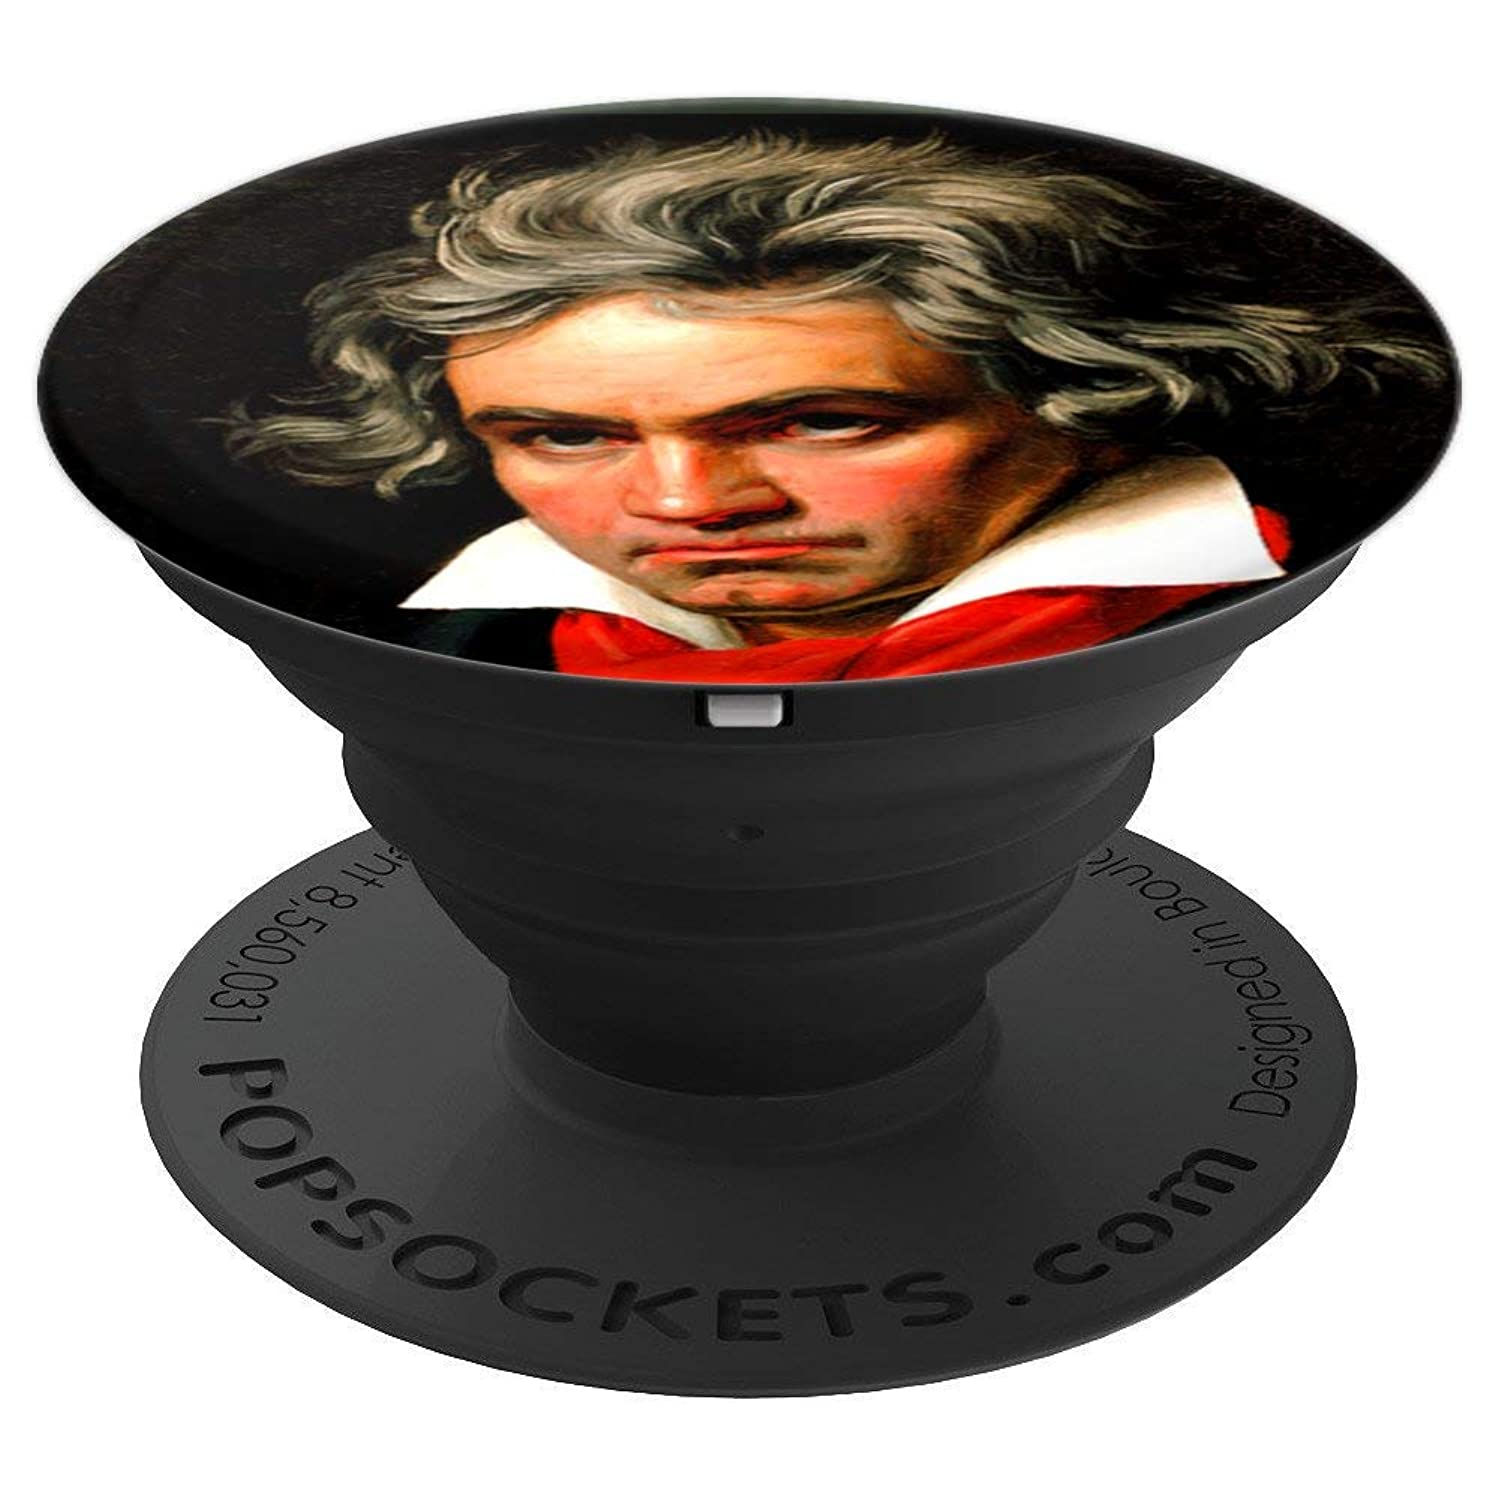 Ludwig Van Beethoven Classical Composer Classic Music Lovers - PopSockets Grip and Stand for Phones and Tablets